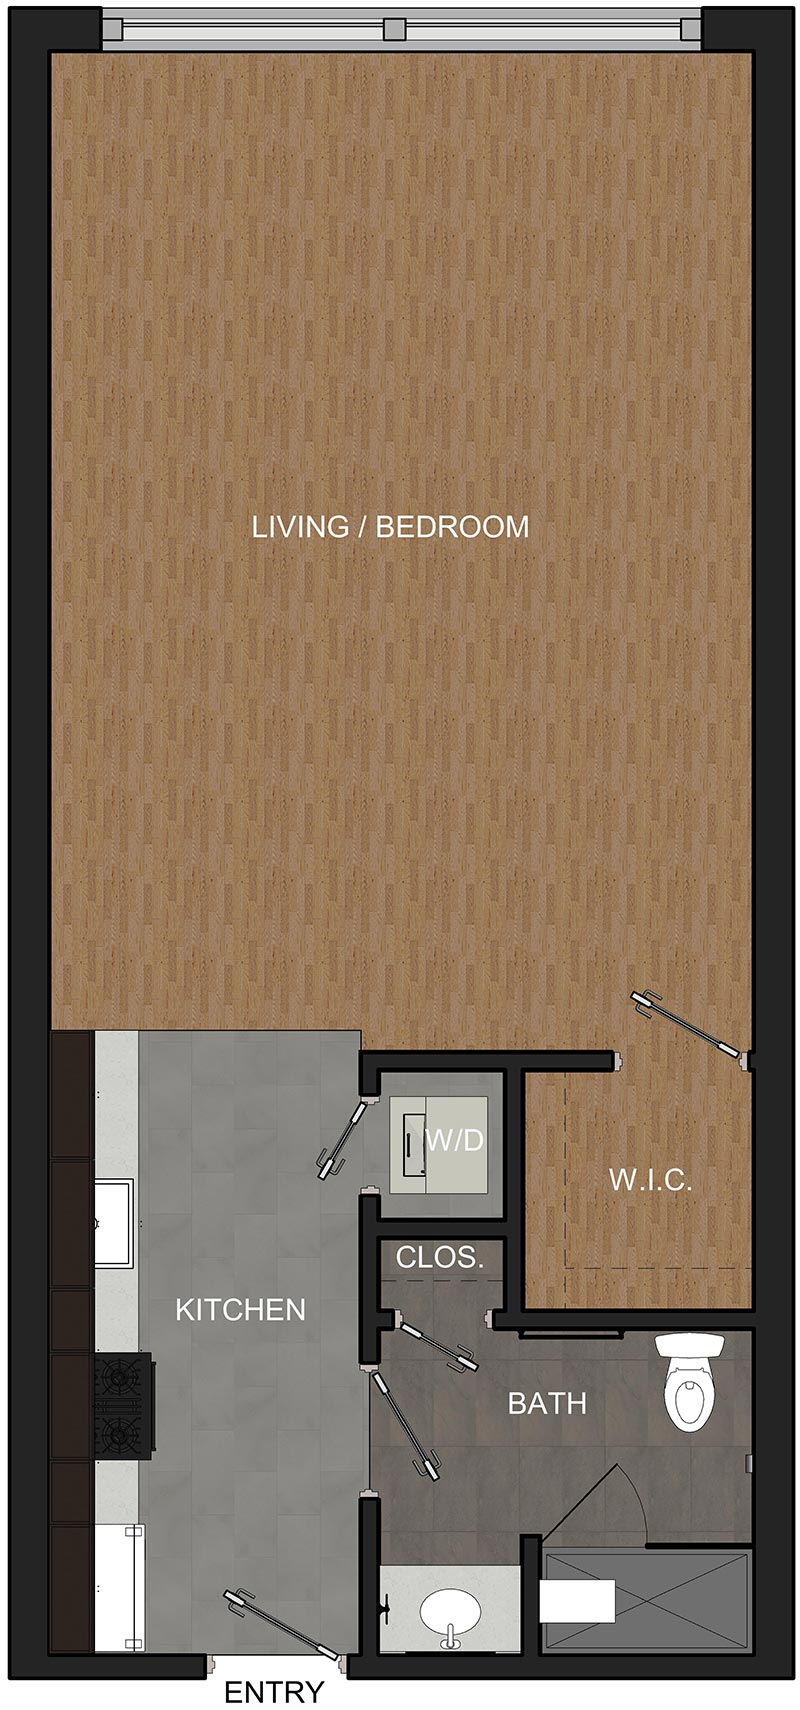 Floor Plan for Studio Apartment in Troy NY in the McCarthy Building